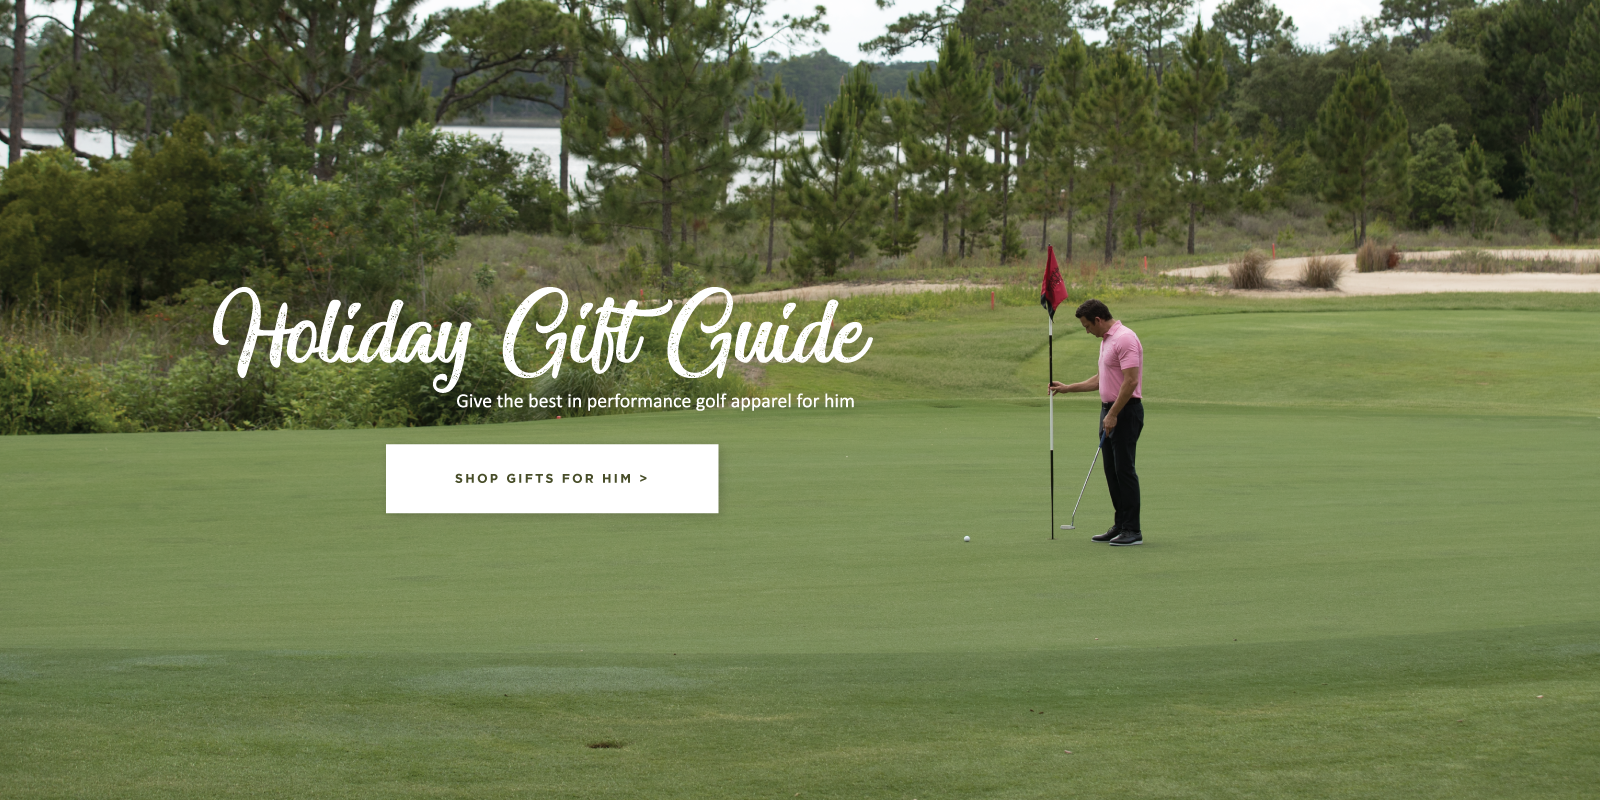 Holiday gift guide. Give the best in performance golf apparel for him. Shop gifts for him.